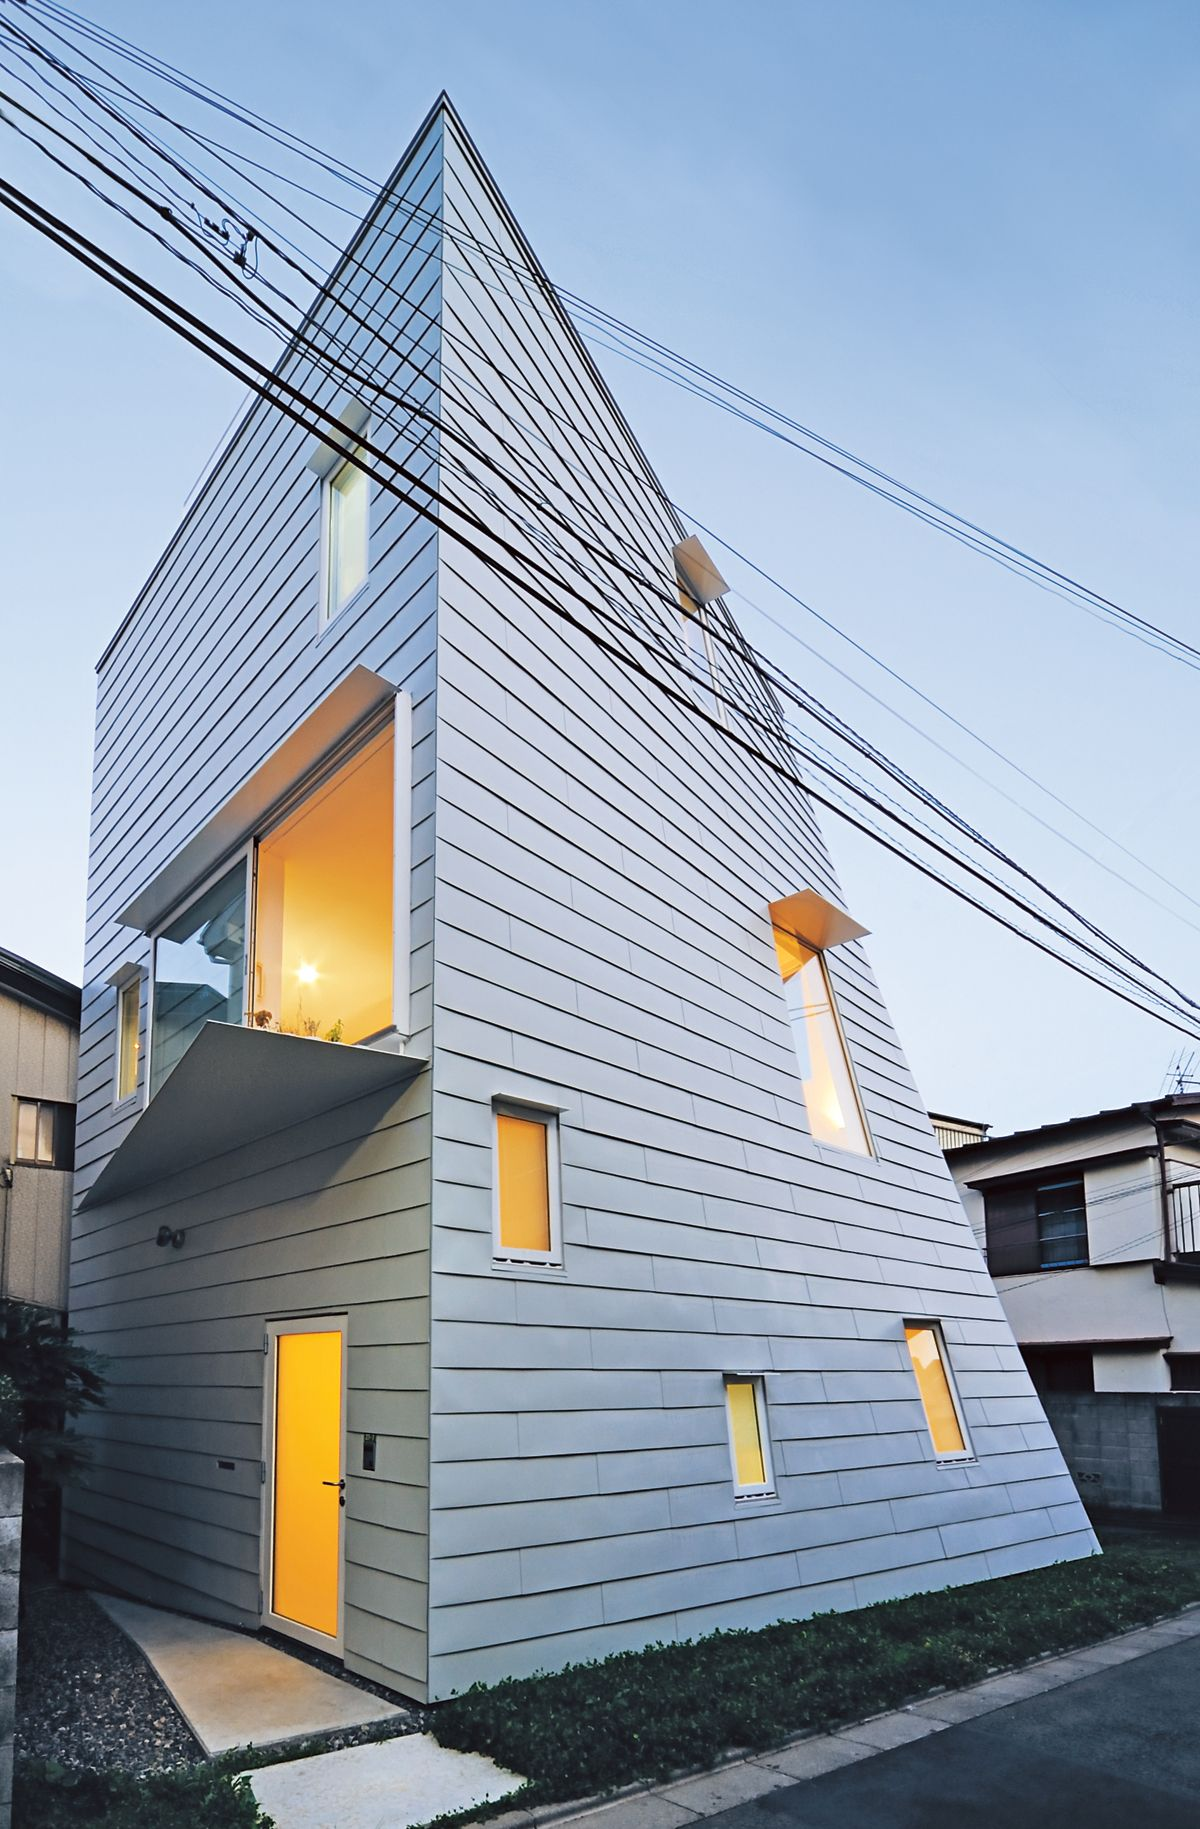 Live Small Japanese Housing Design Architecture Amazing